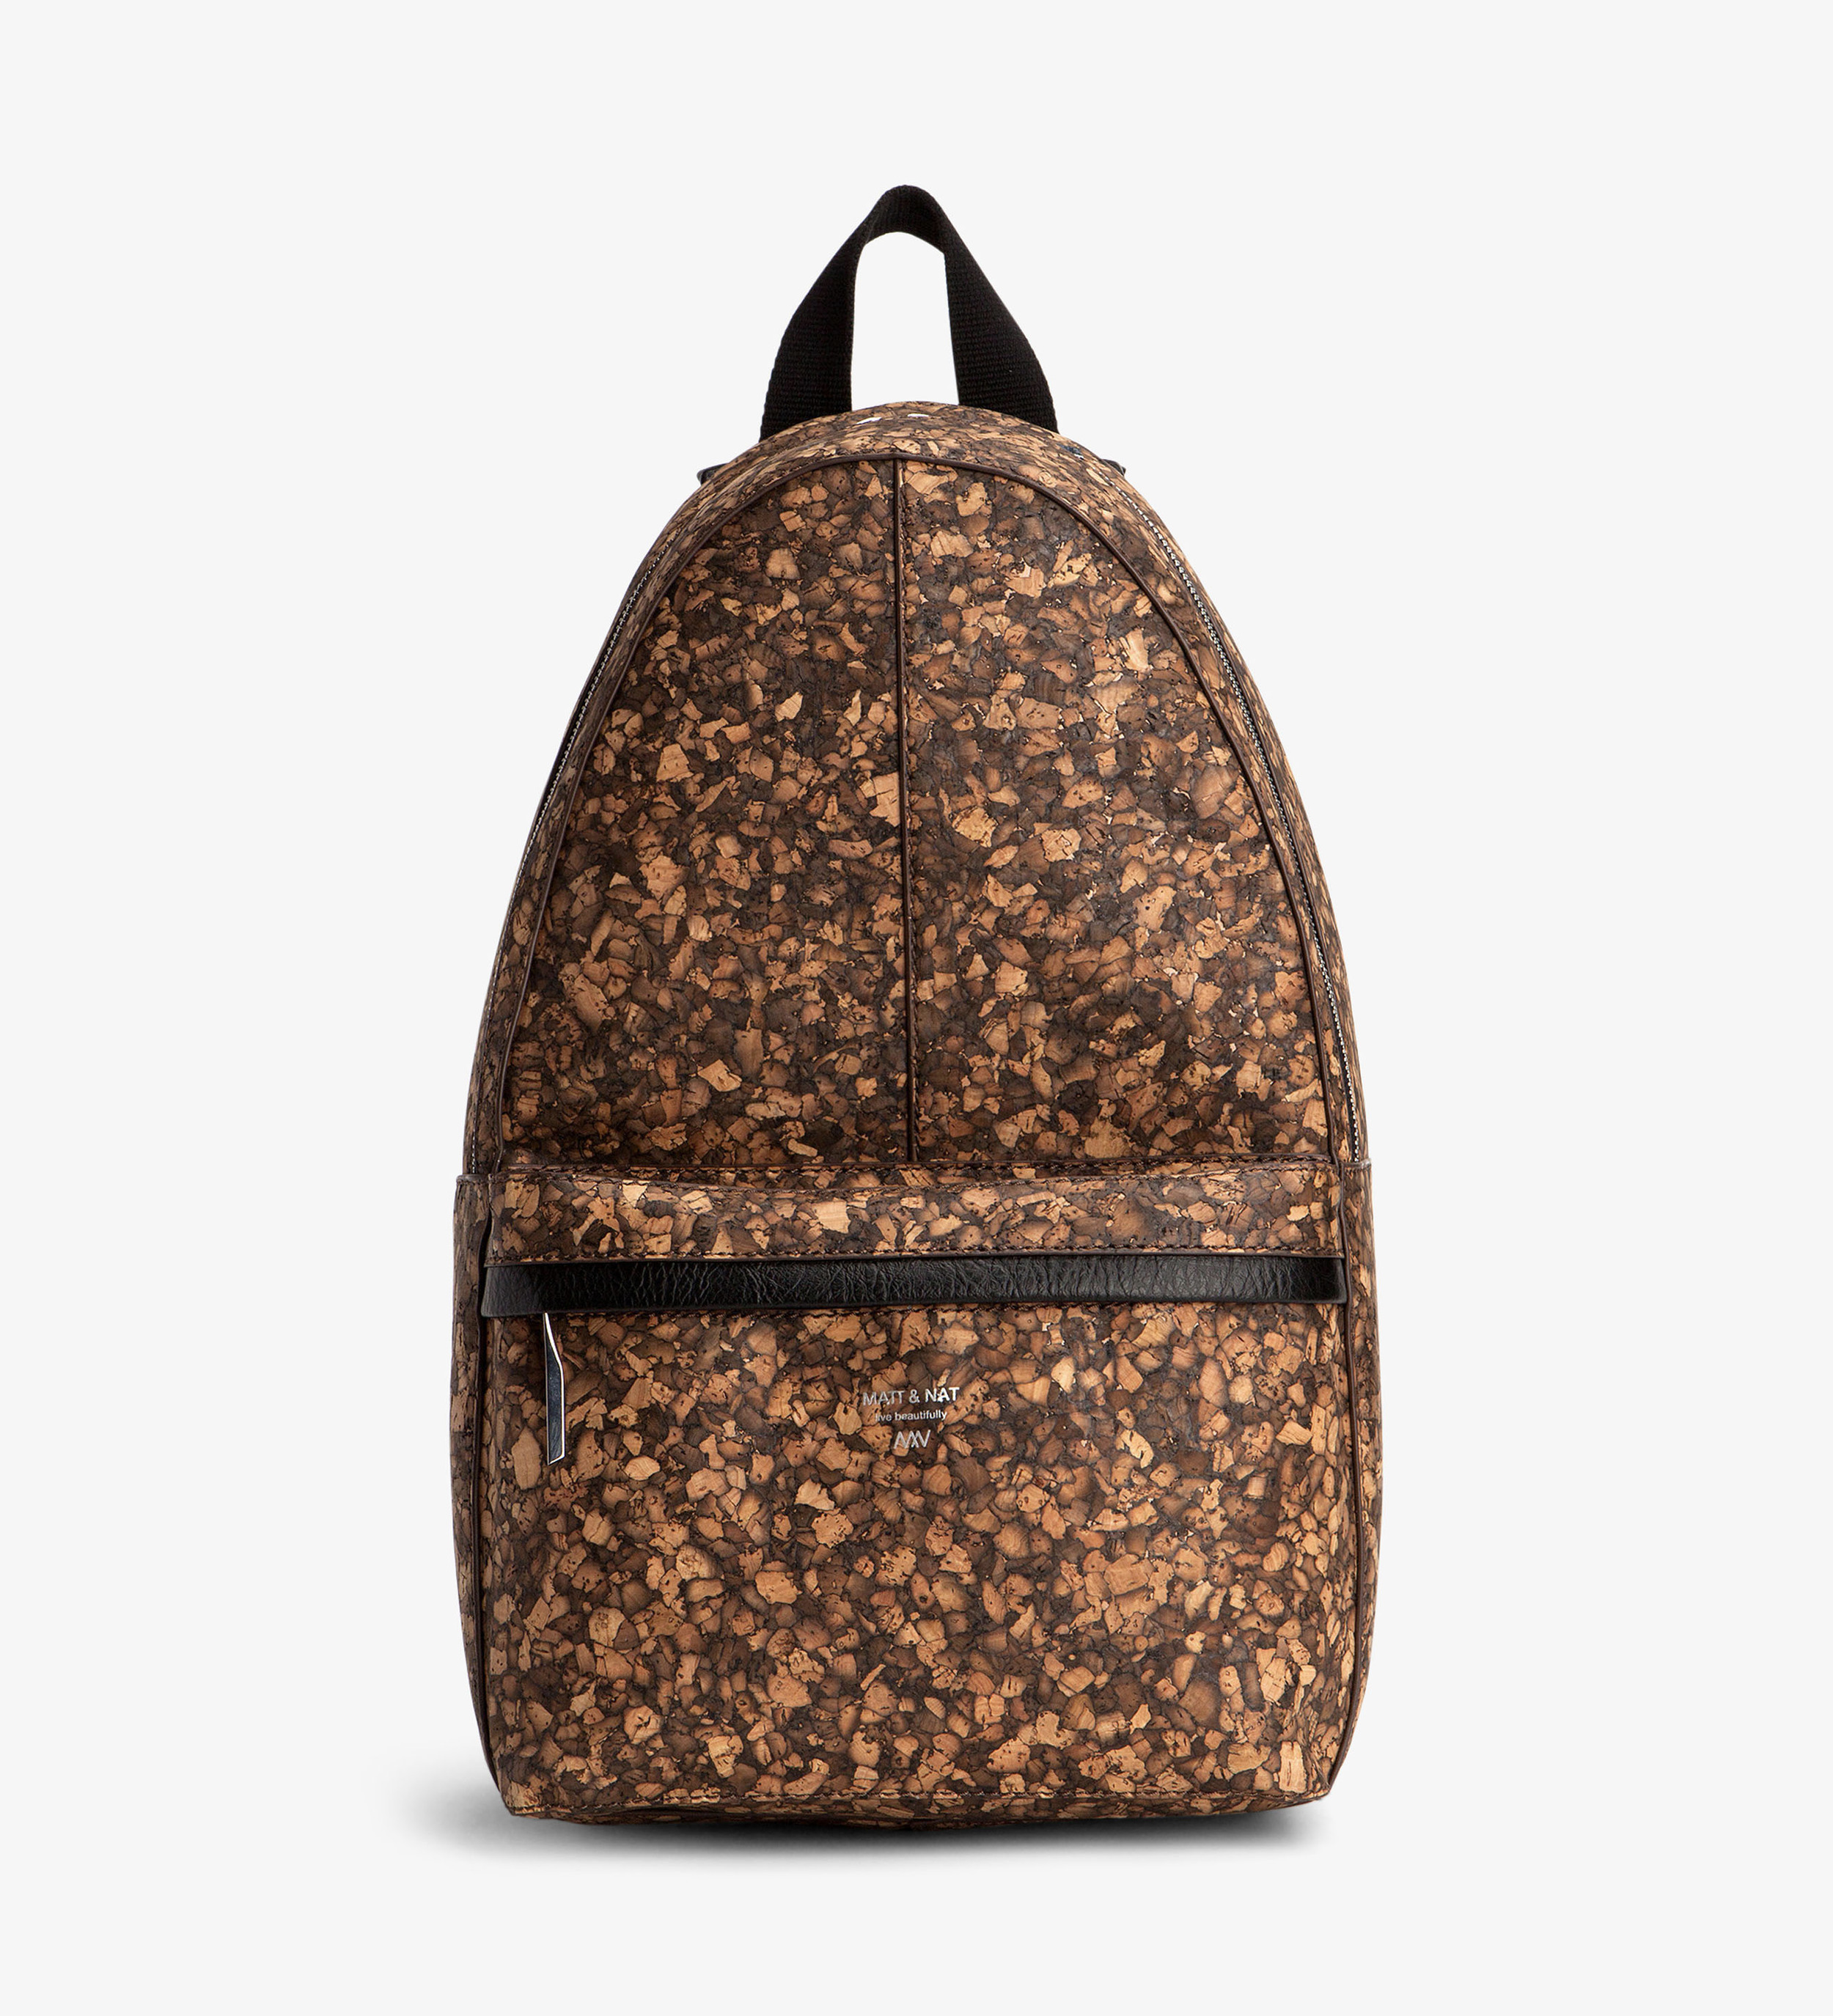 Reya Backpack in Natural from the Cork Collection - USD $185